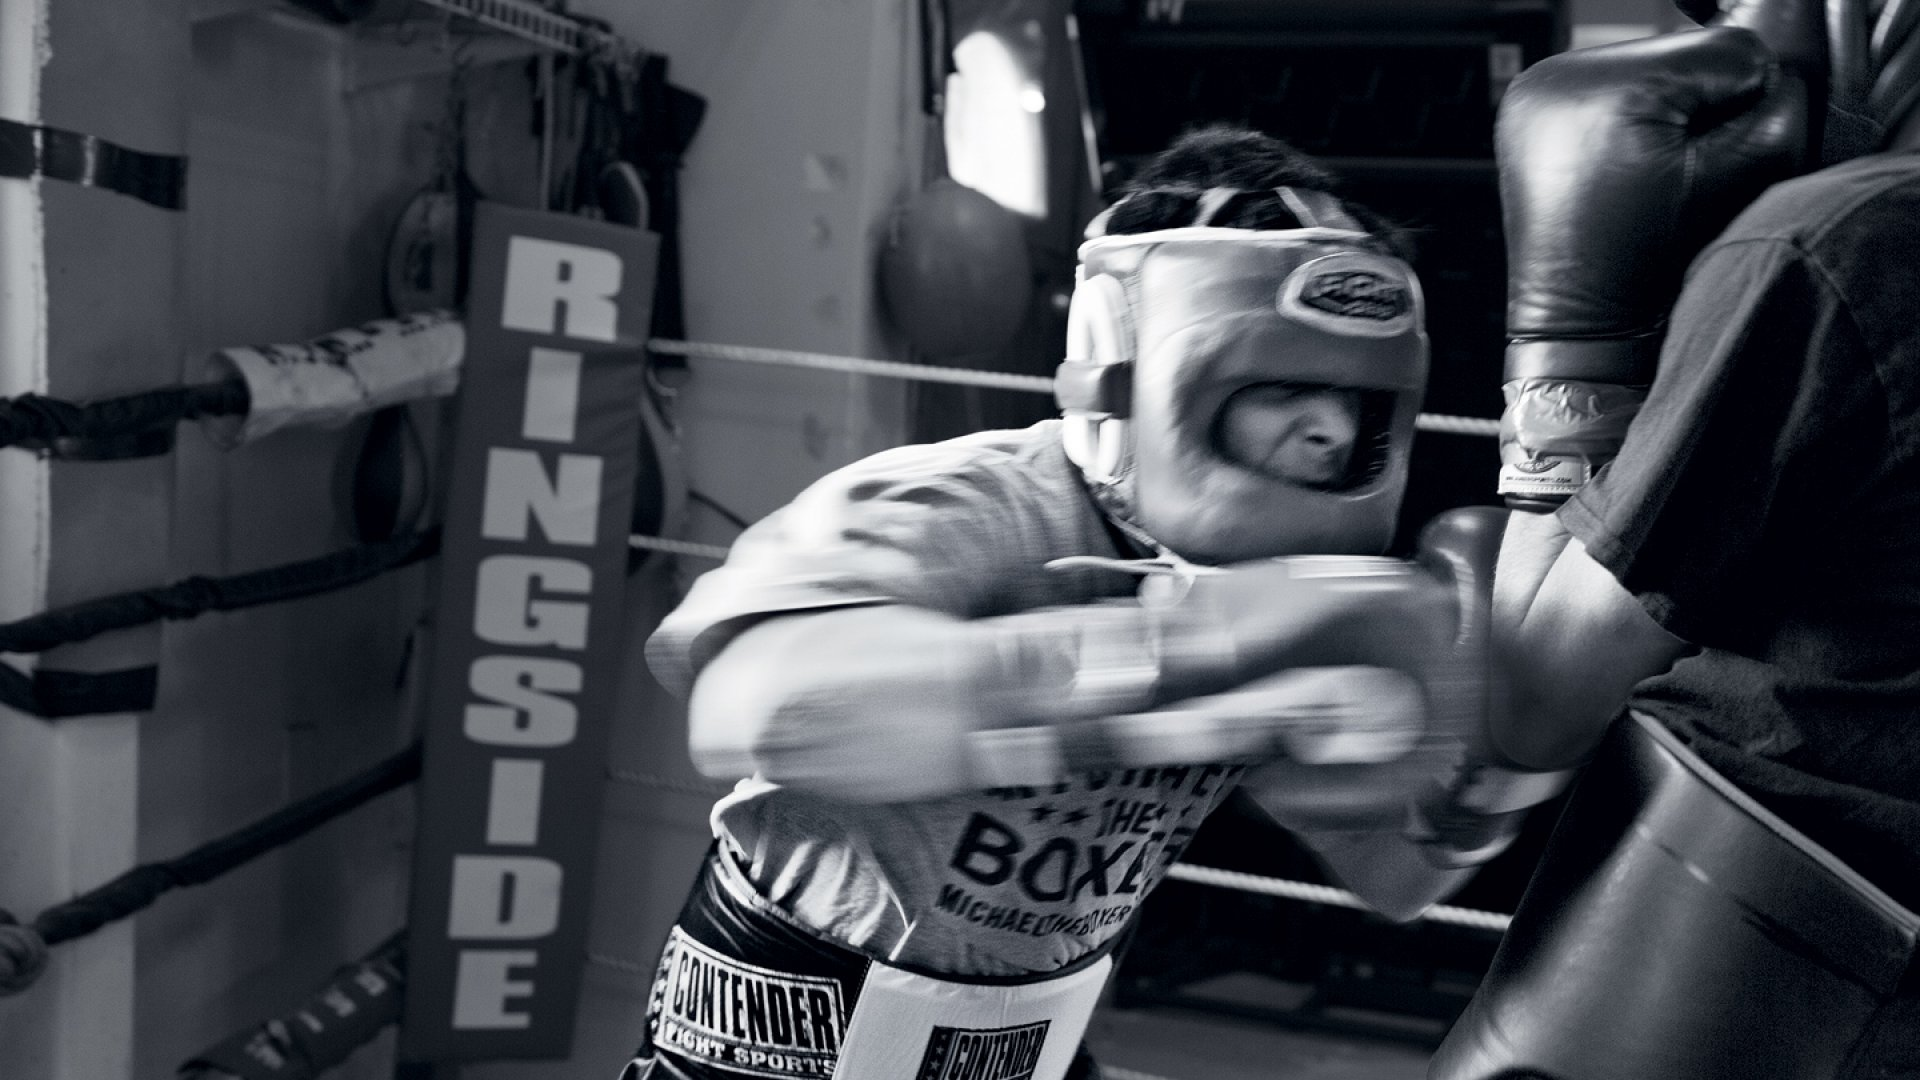 """Lukas Biewald, co-founder of CrowdFlower, drills at the Michael the Boxer gym. <a href=""""http://www.inc.com/ss/fight-club"""">View slideshow</a>"""